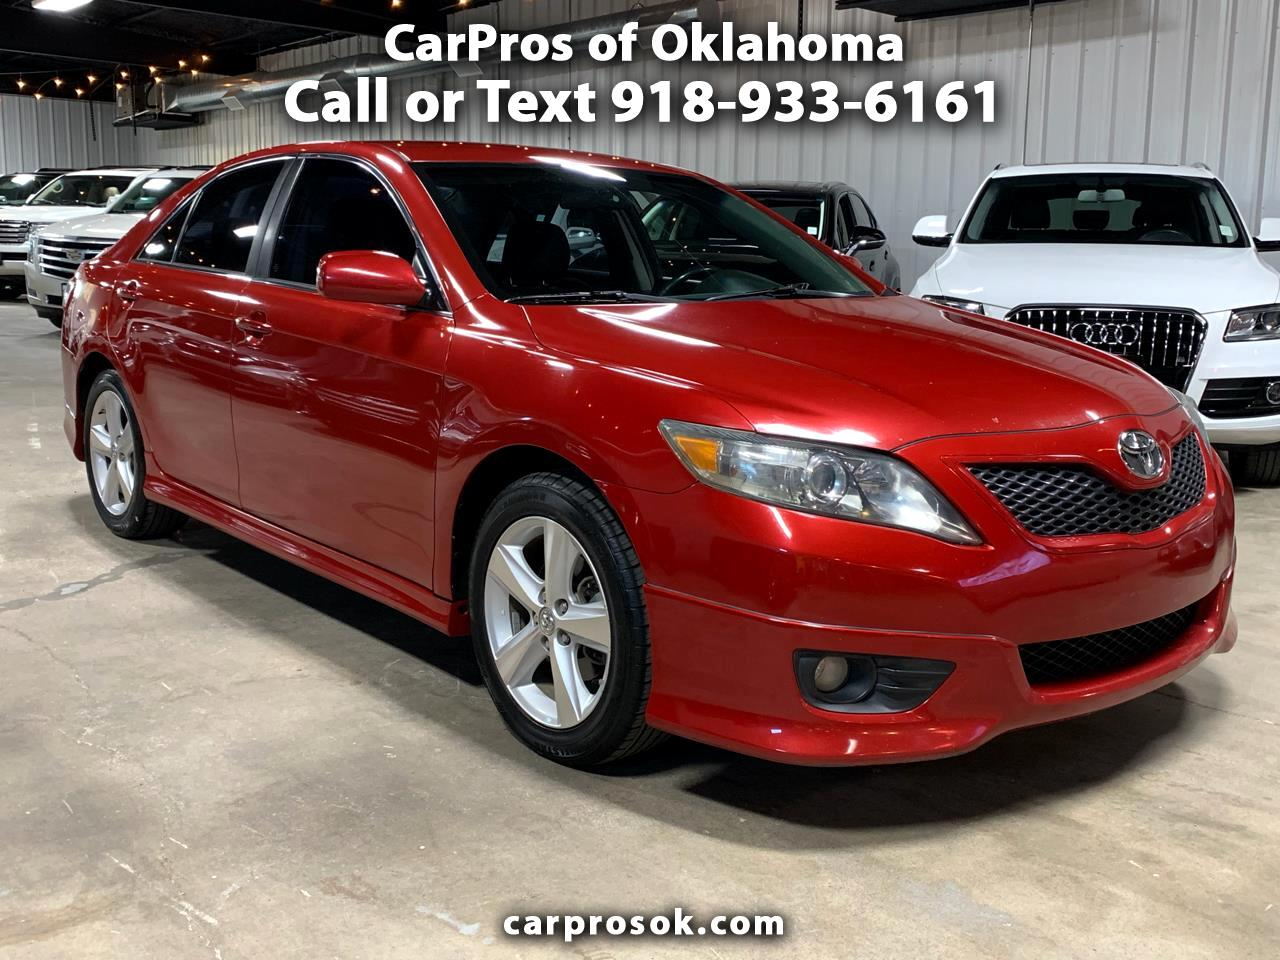 2010 Toyota Camry 2014.5 4dr Sdn I4 Auto SE Sport (Natl)